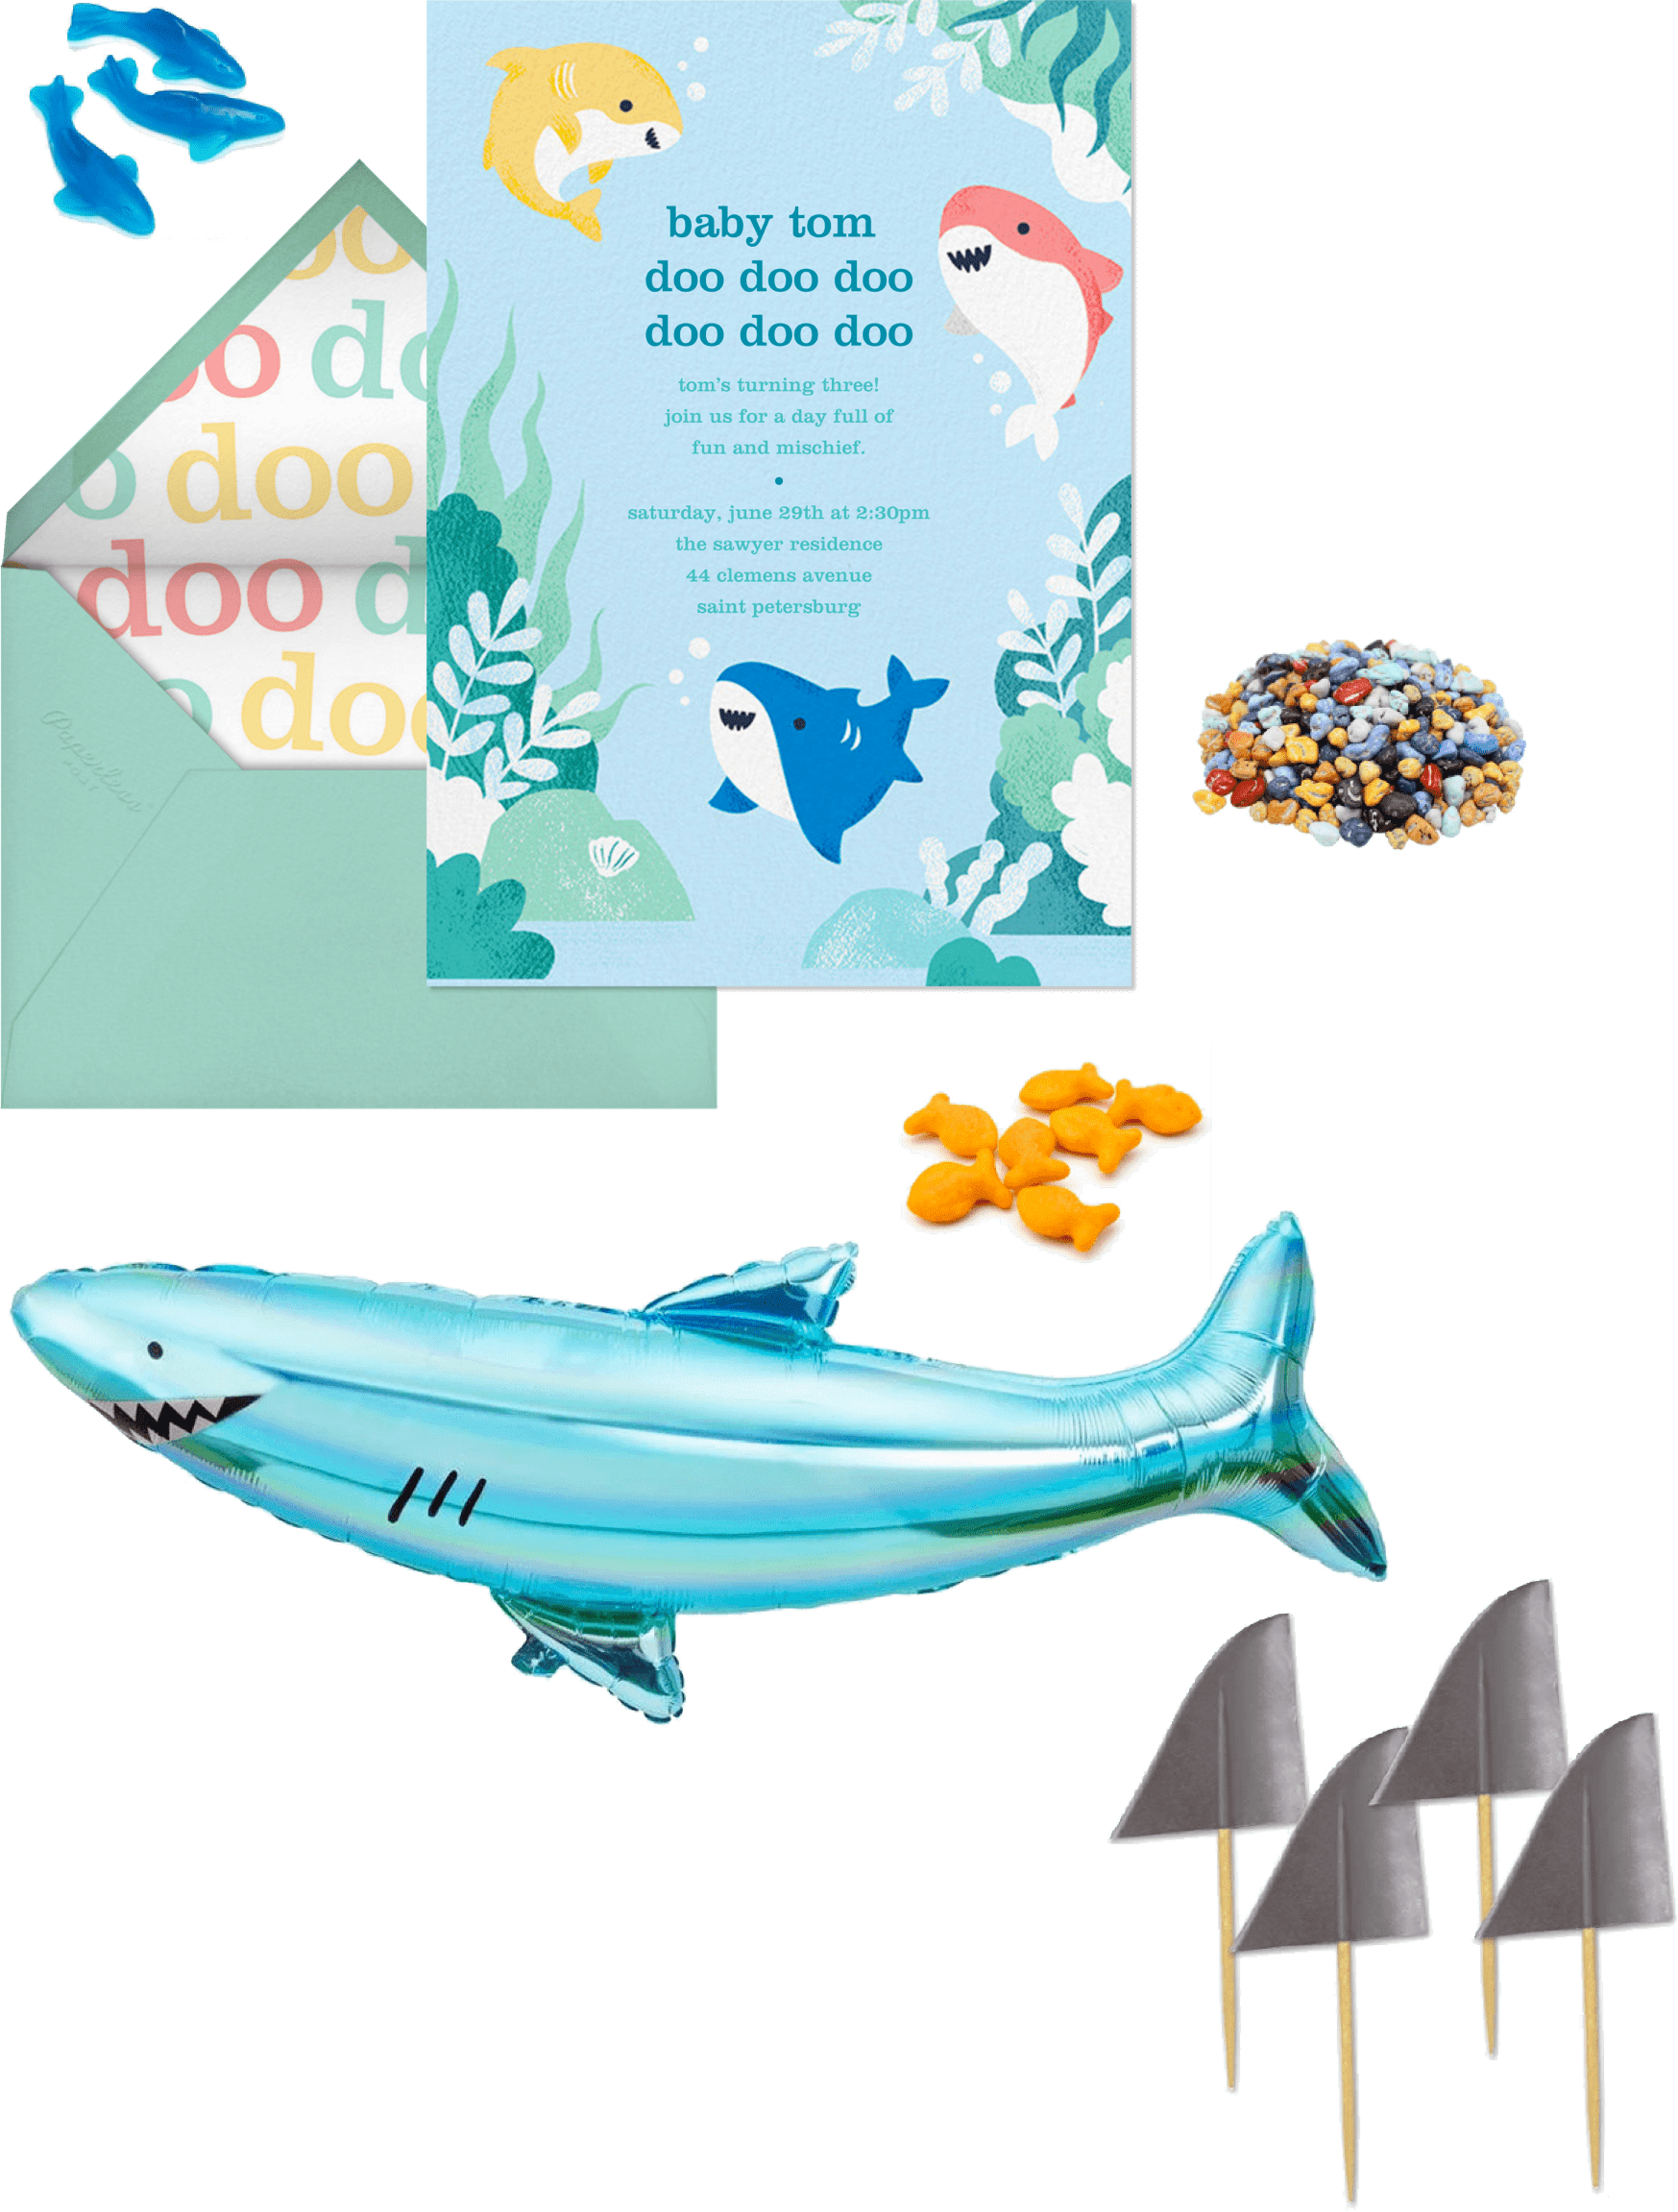 Baby Shark birthday party invitation and supplies